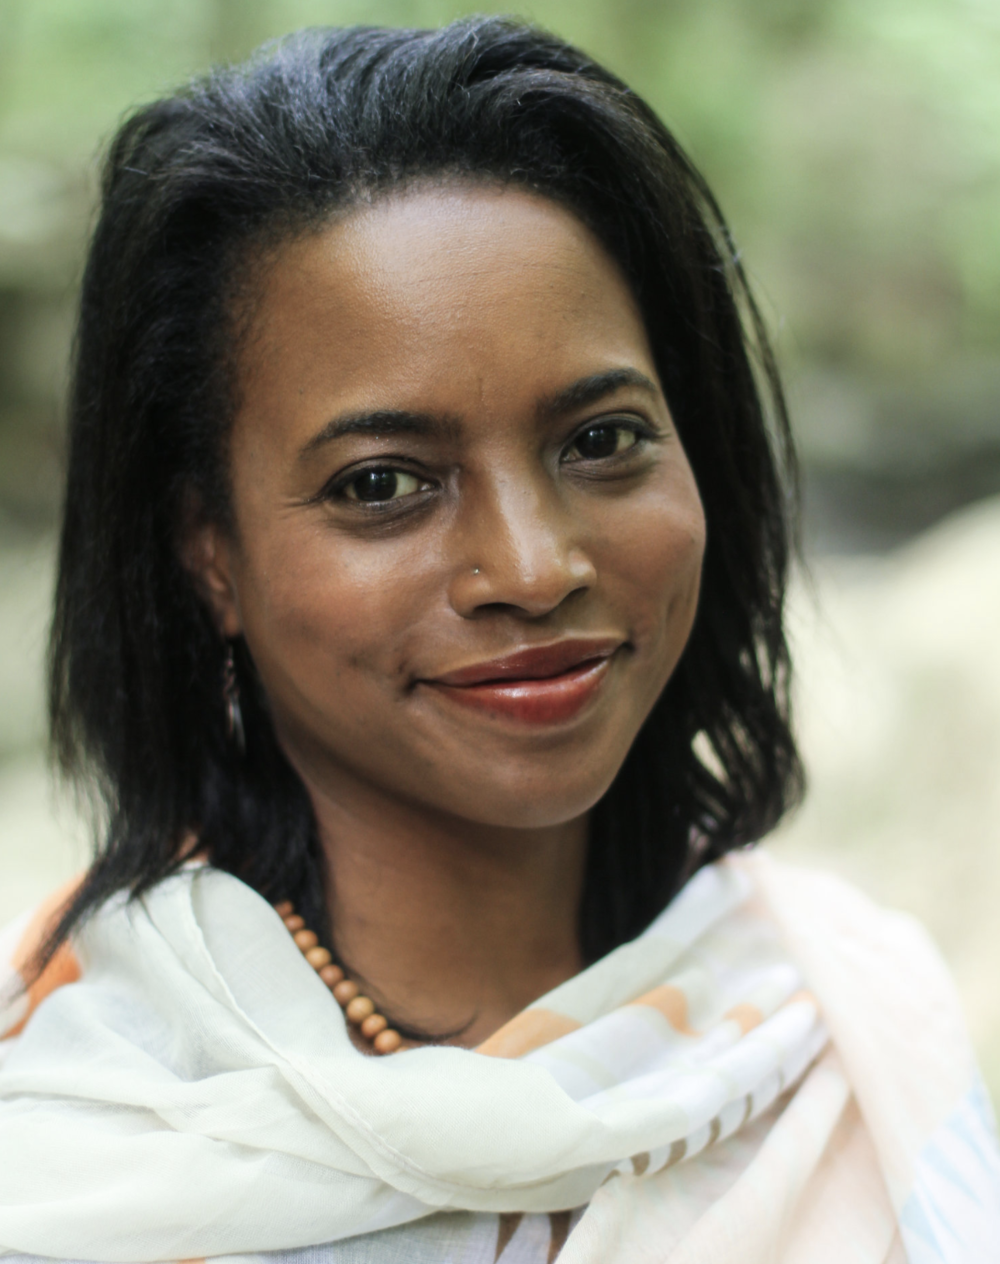 Meet Michelle C. Johnson - Want to deepen your understanding of identity, culture, institutional and cultural racism, and internalizations? Join our newest Off the Mat Faculty Member, Michelle Cassandra Johnson for a 4-session groundbreaking and transformative workshop on Dismantling Racism and White Supremacy starting on February 5th. Learn how race was constructed, how whiteness functions and how oppression and privilege limit our capacity to be free. Learn more and enroll here.